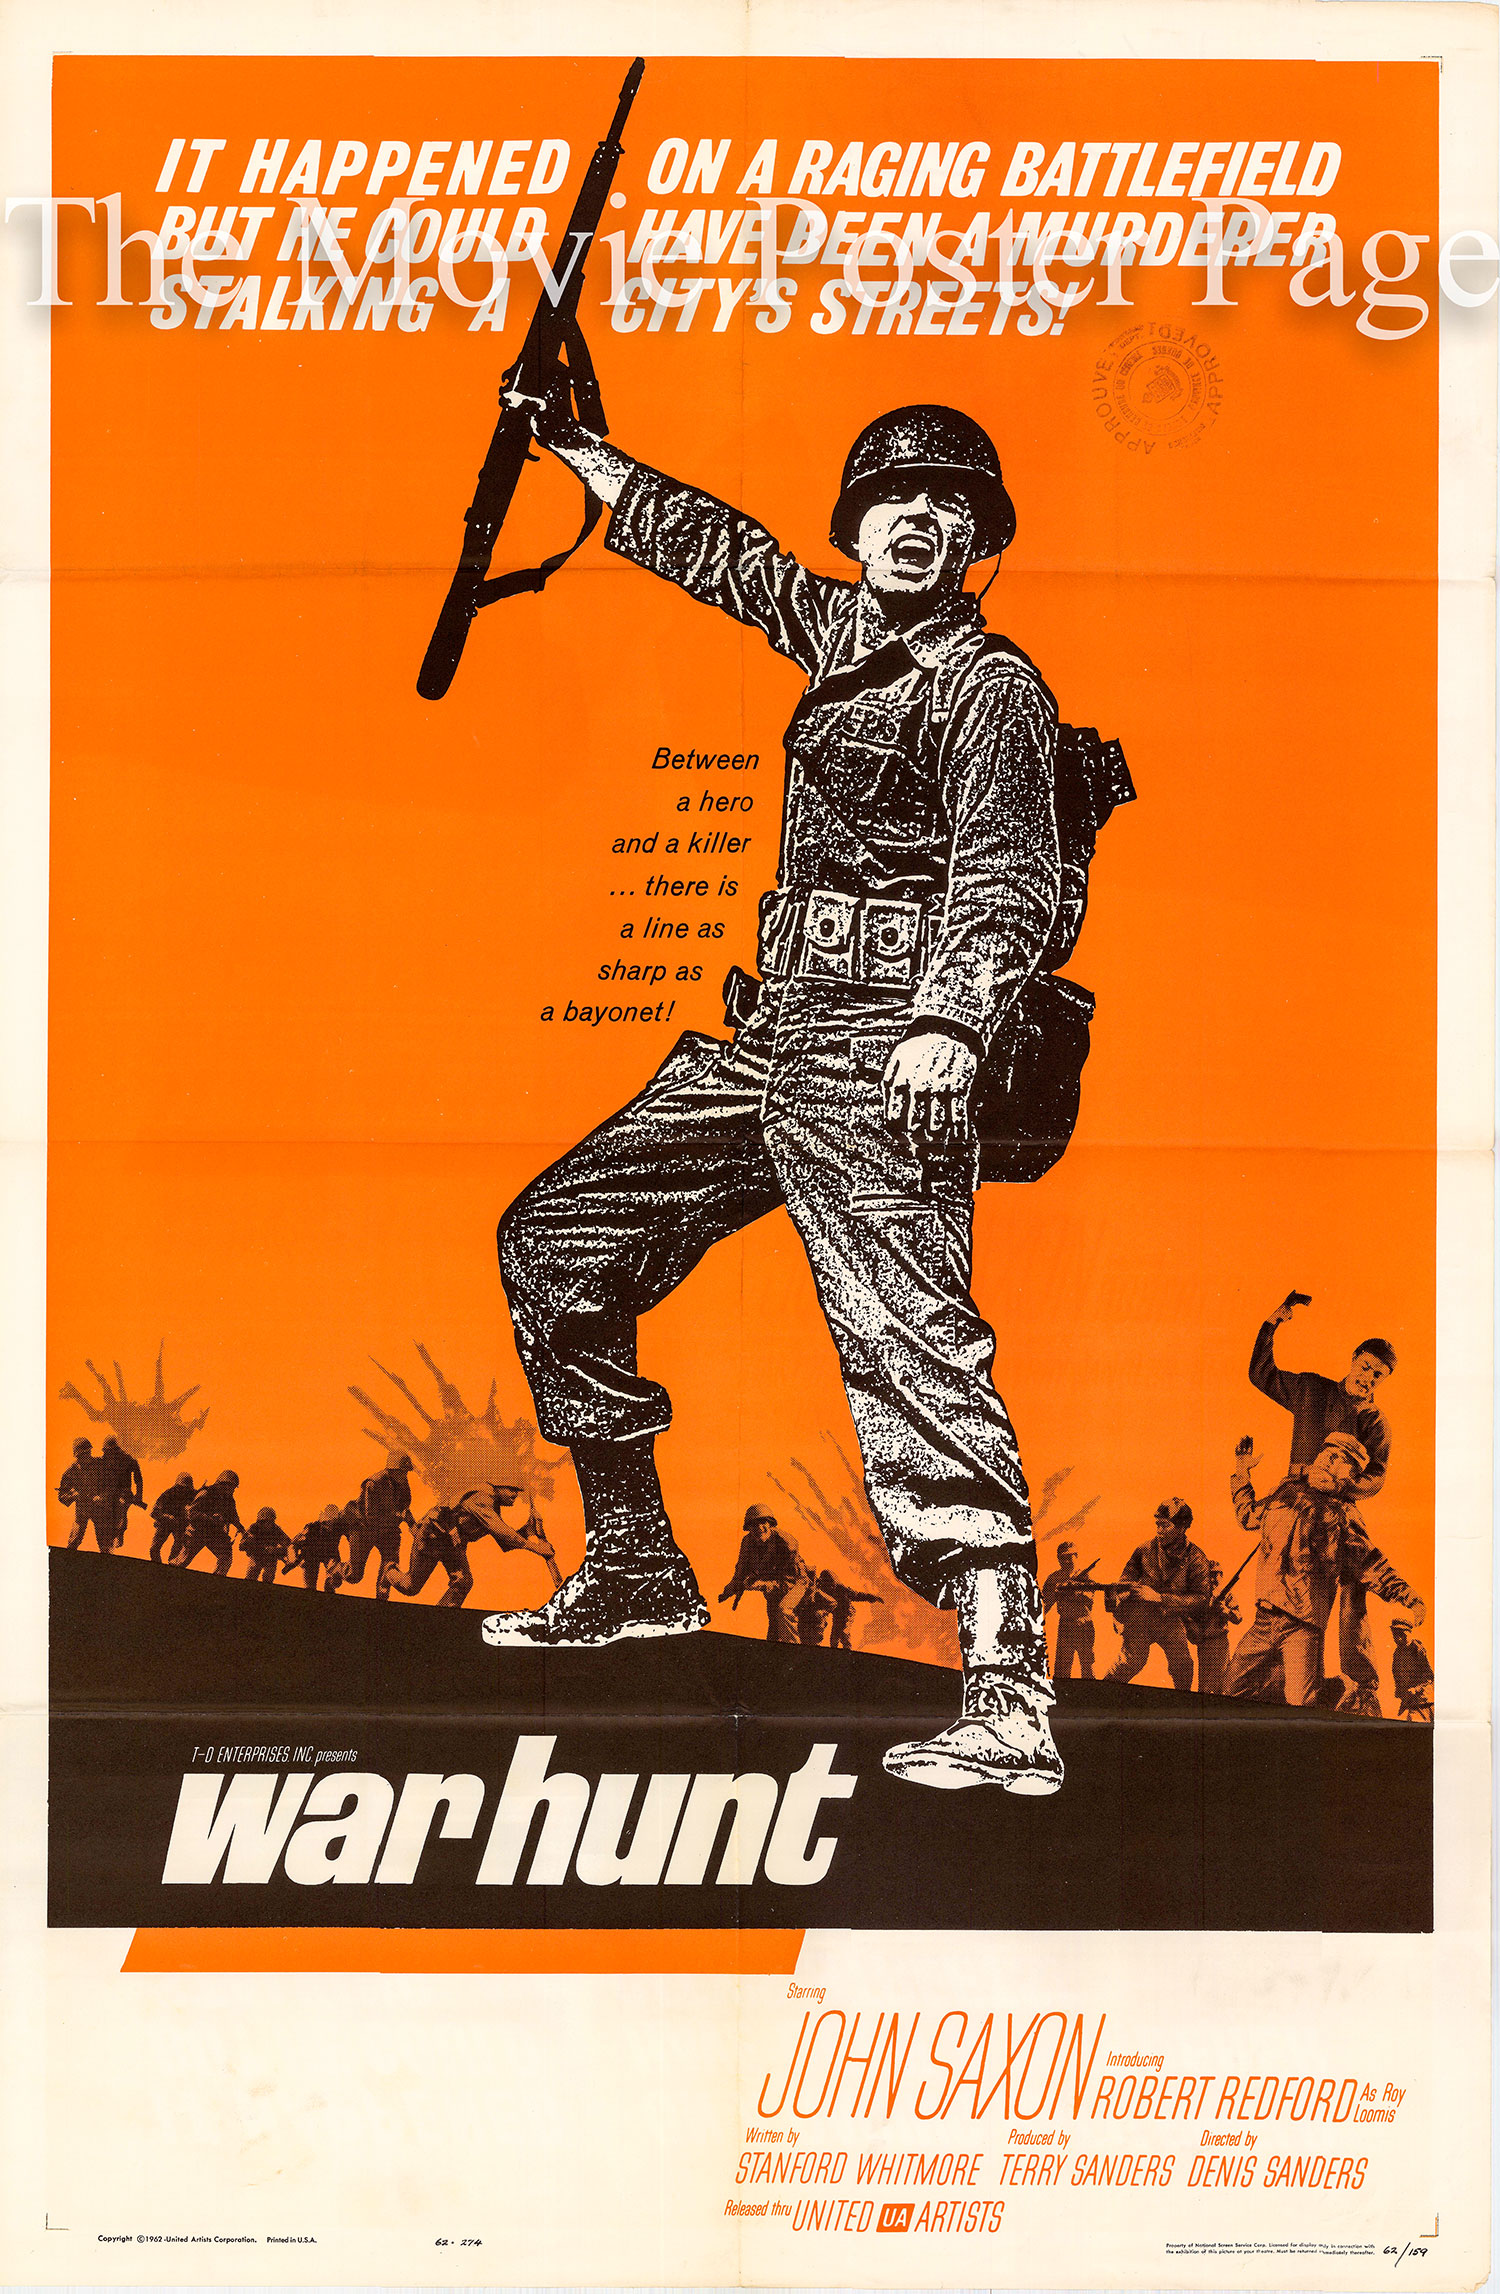 Pictured is a US one-sheet promotional poster for the 1962 Denis Sanders film War Hunt starring John Saxon and Sydney Pollack, with a debut performance by Robert Redford.